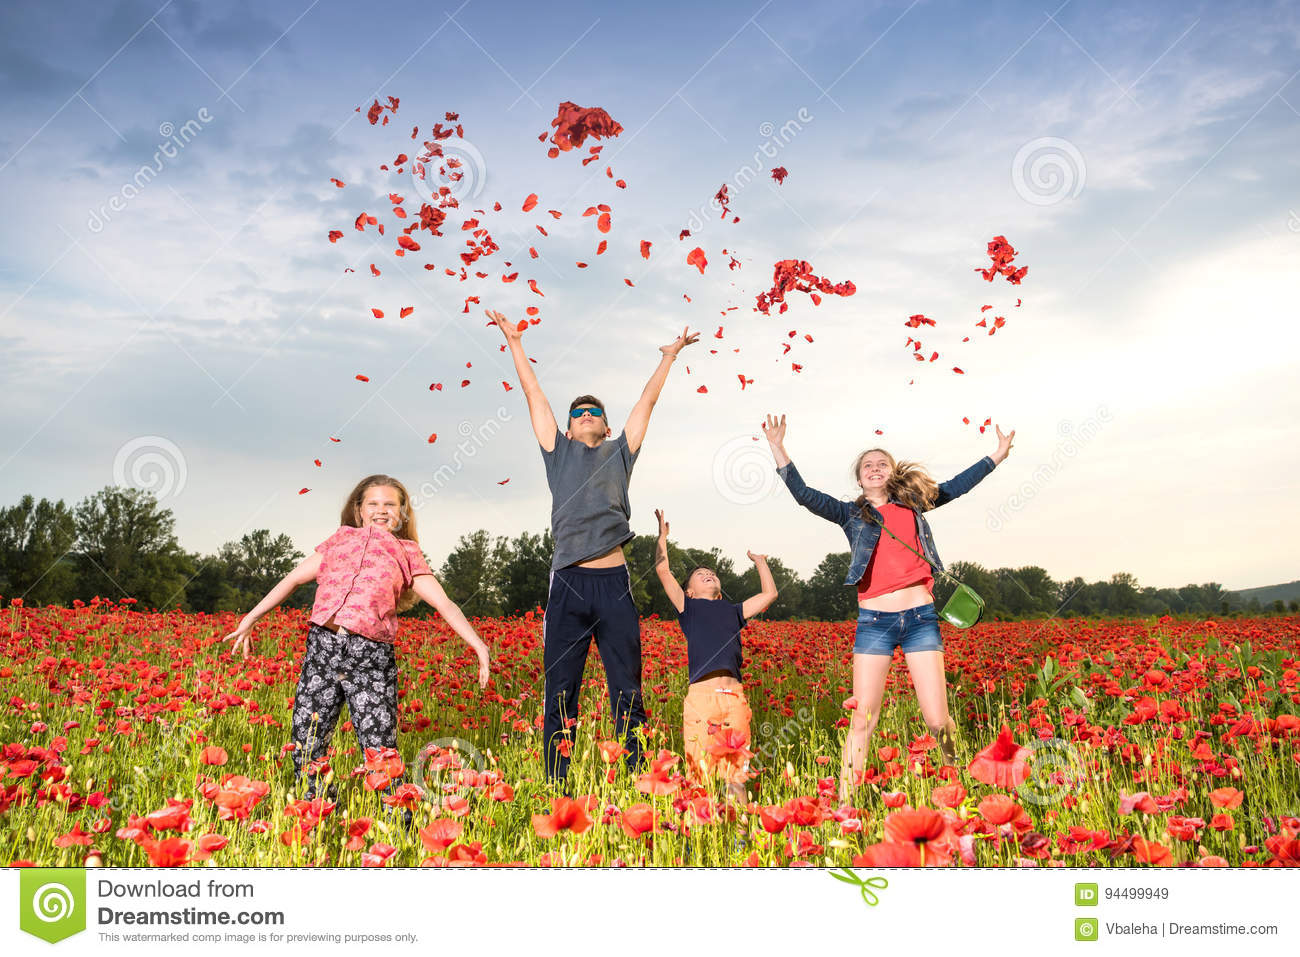 Happy children jumping and throwing petals of poppies